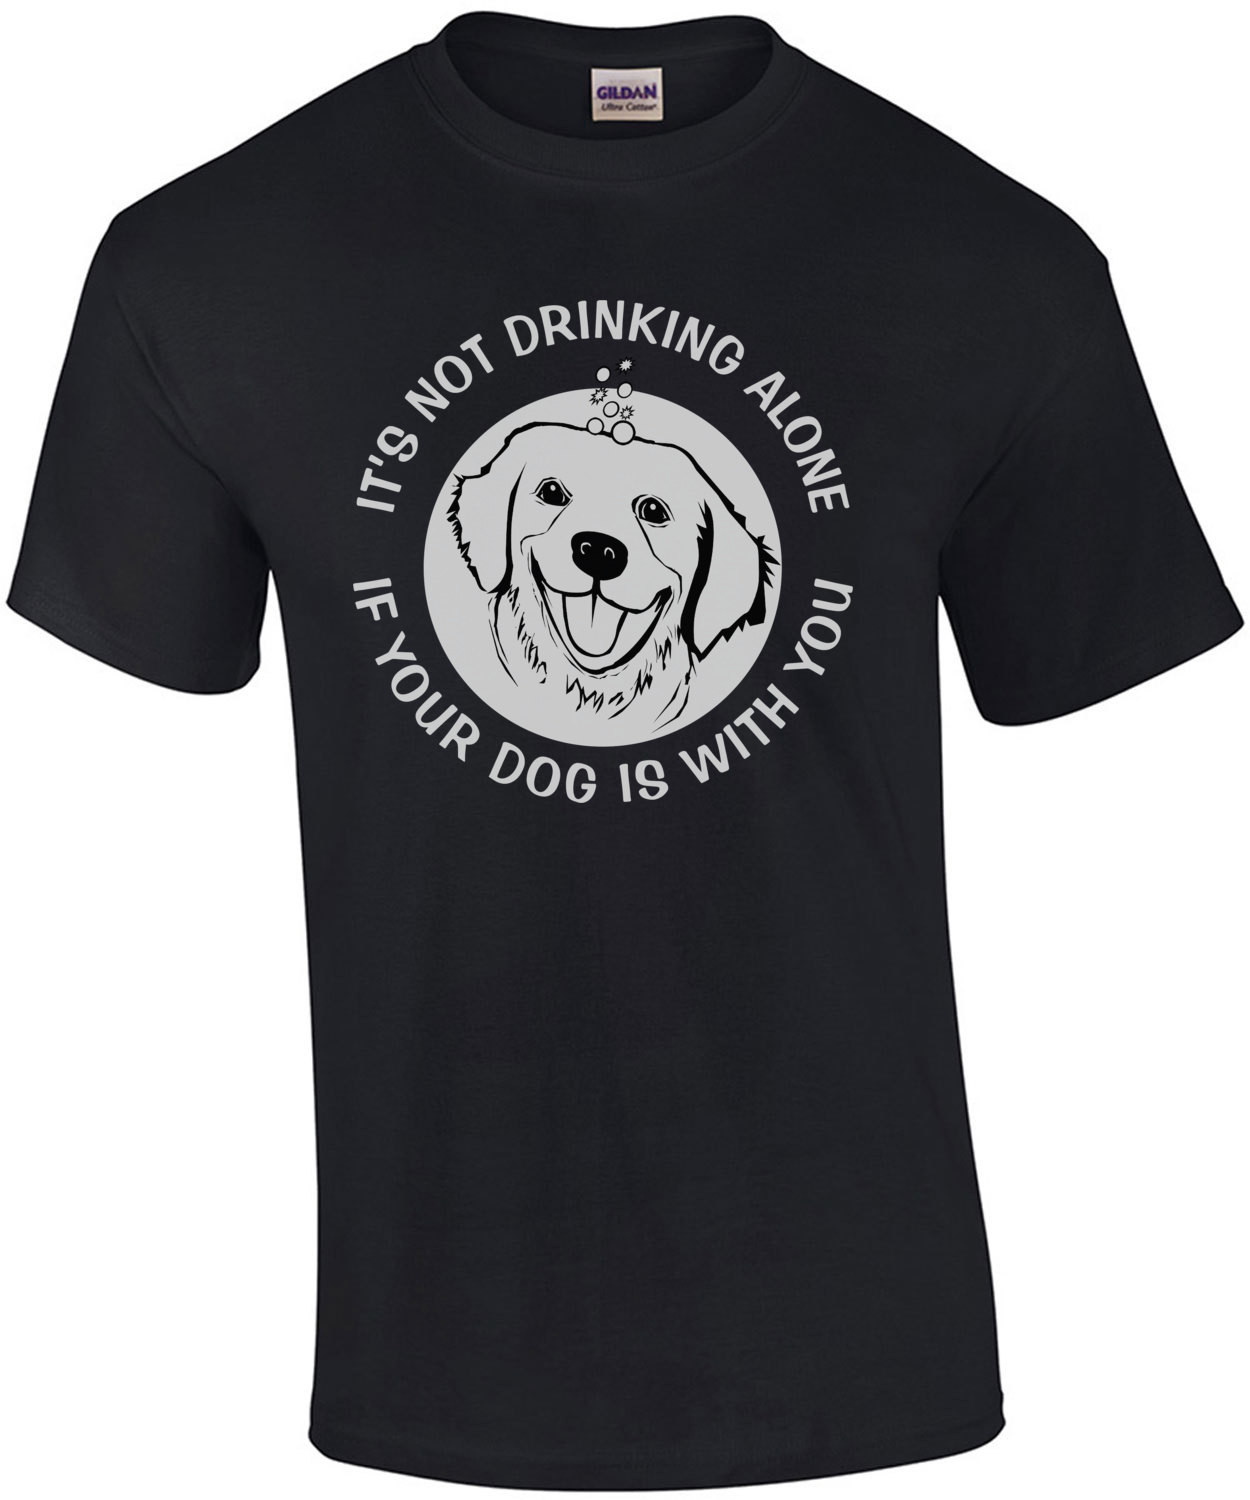 It's not drinking alone if your dog is with you - Funny Drinking